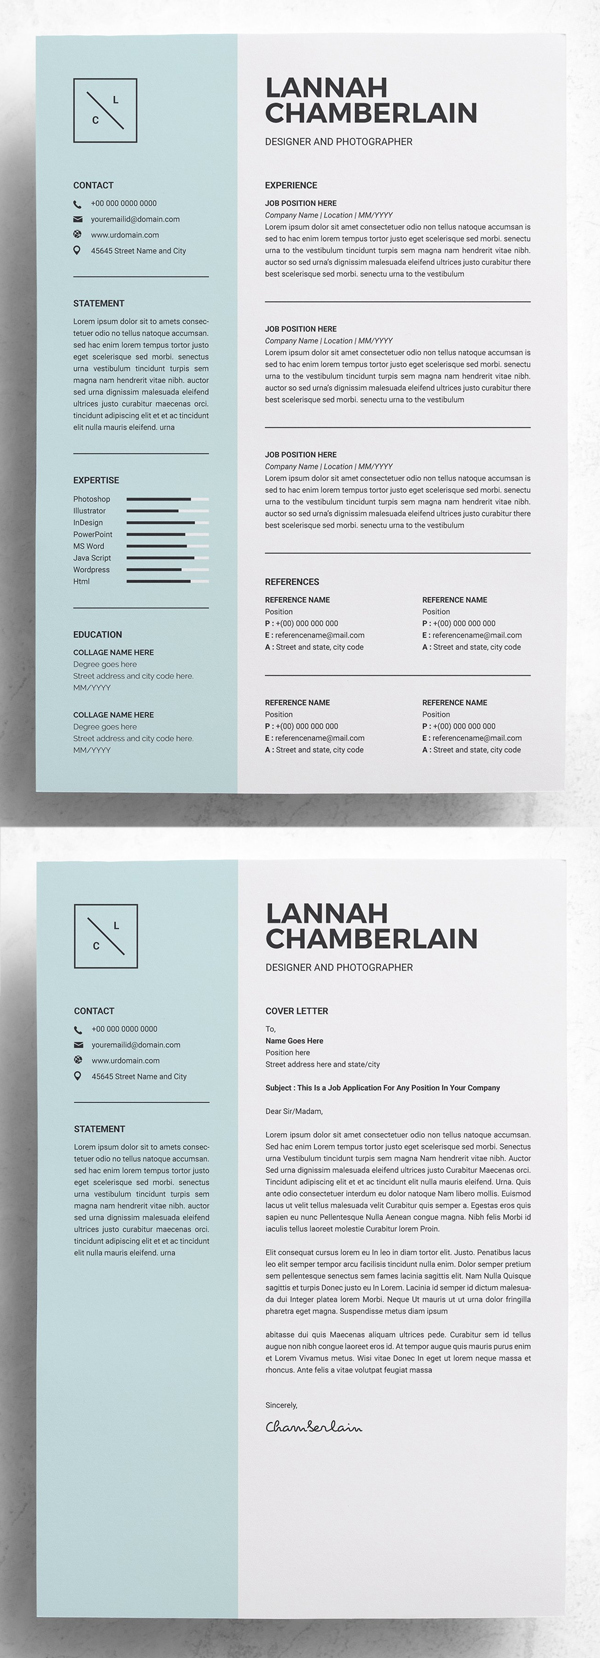 50 Best Resume Templates Of 2020 - 41